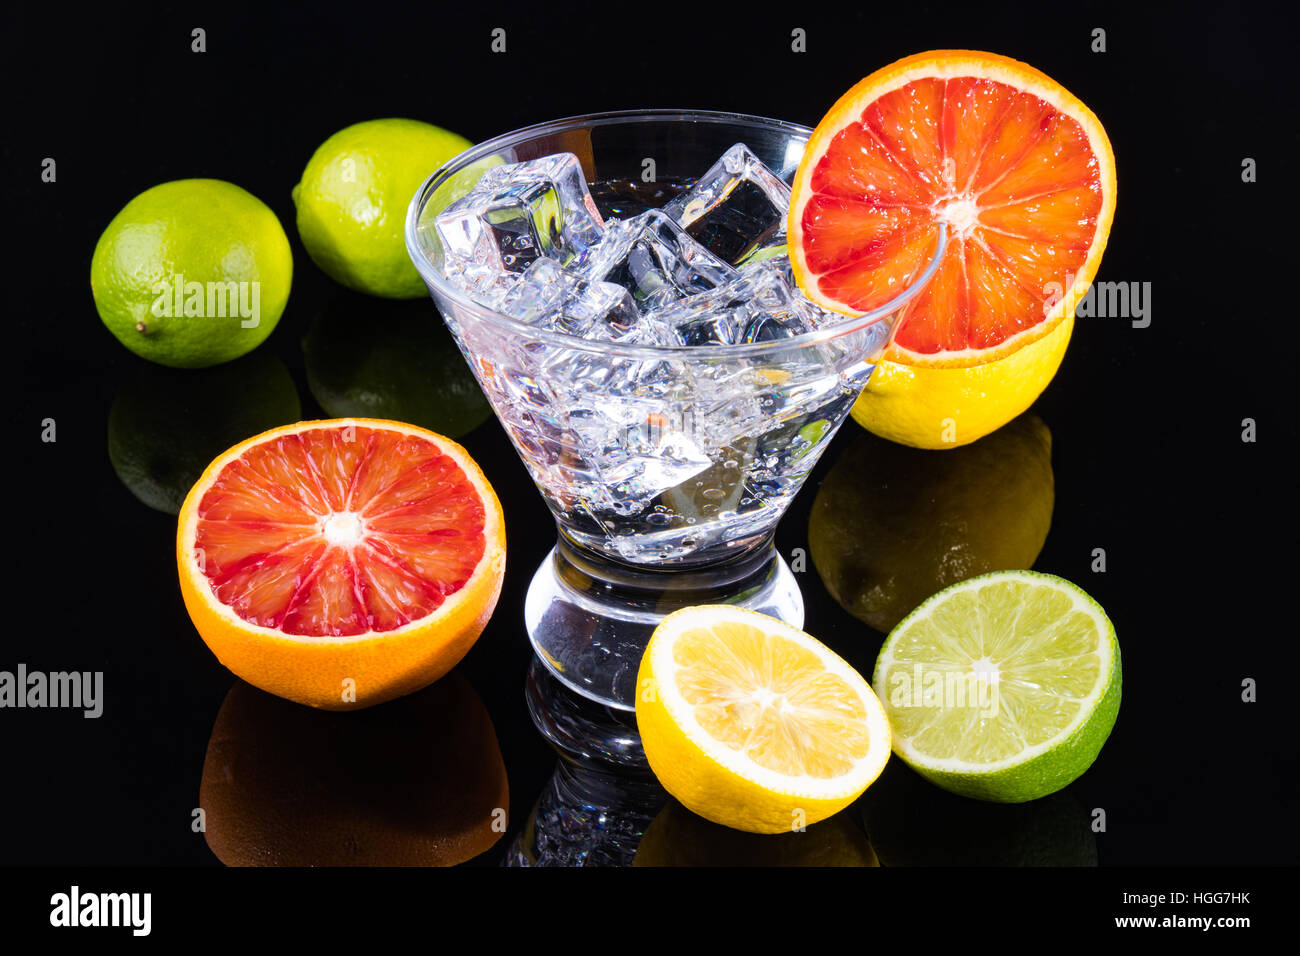 Sparkling beverage in a martini glass with colorful citrus on a black backgorund - Stock Image